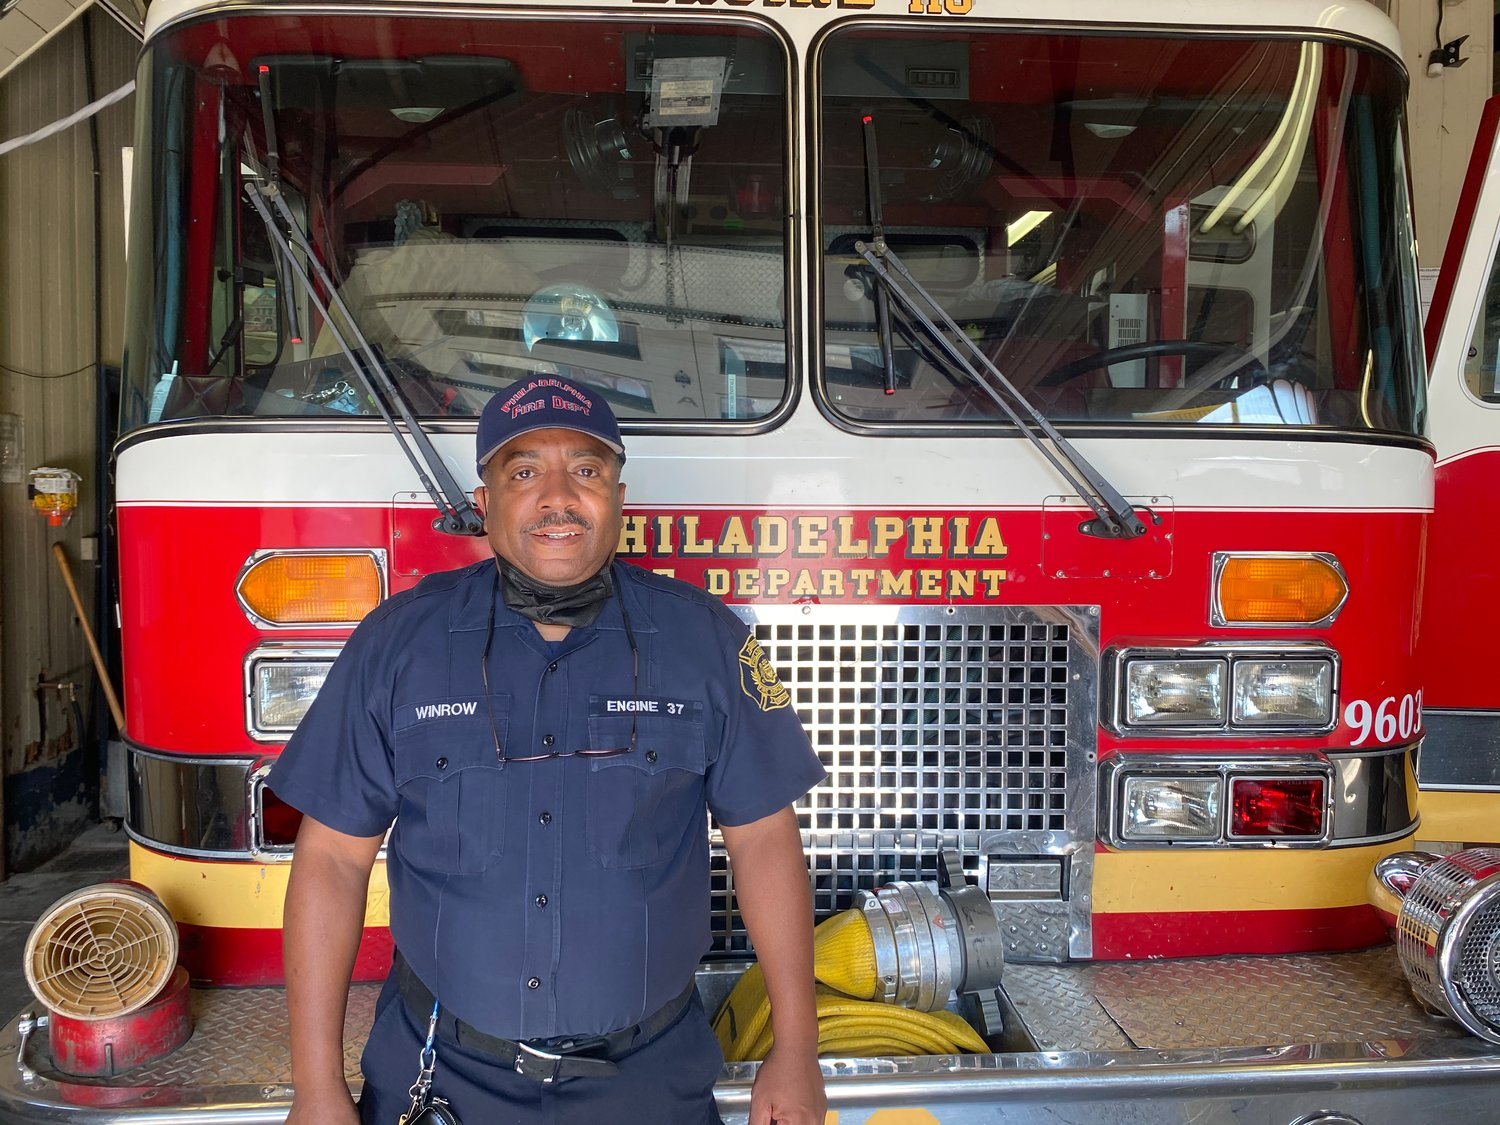 Firefighter Charles Winrow of Engine 37 in Chestnut Hill.